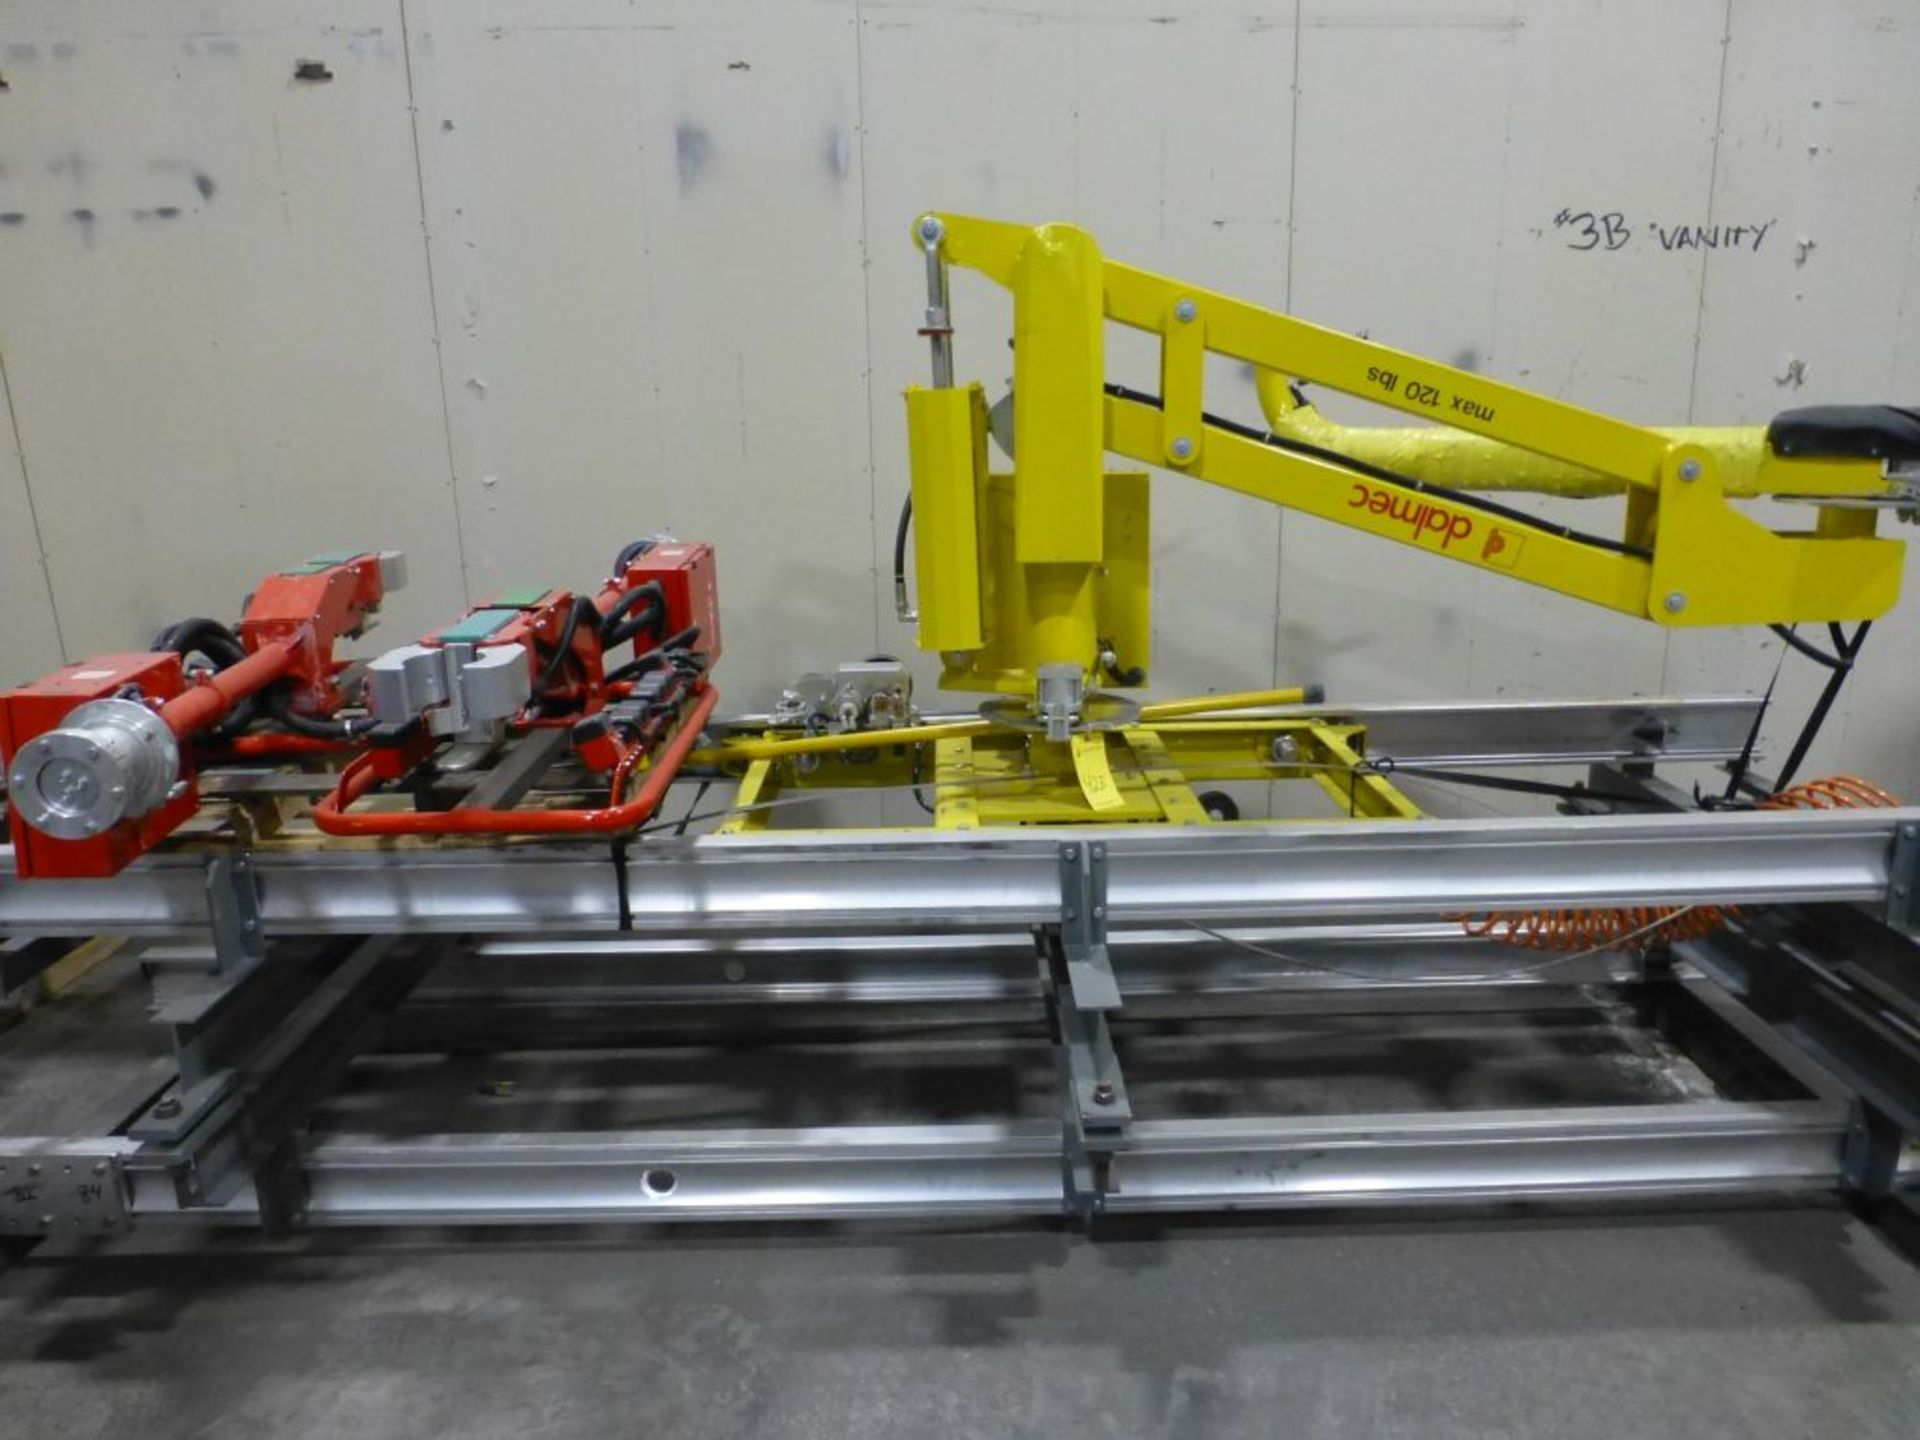 Dalmec Industrial Manipulator with Attachment | Type: PMS; Max Load 120 lbs; Pressure: .58 MPS;